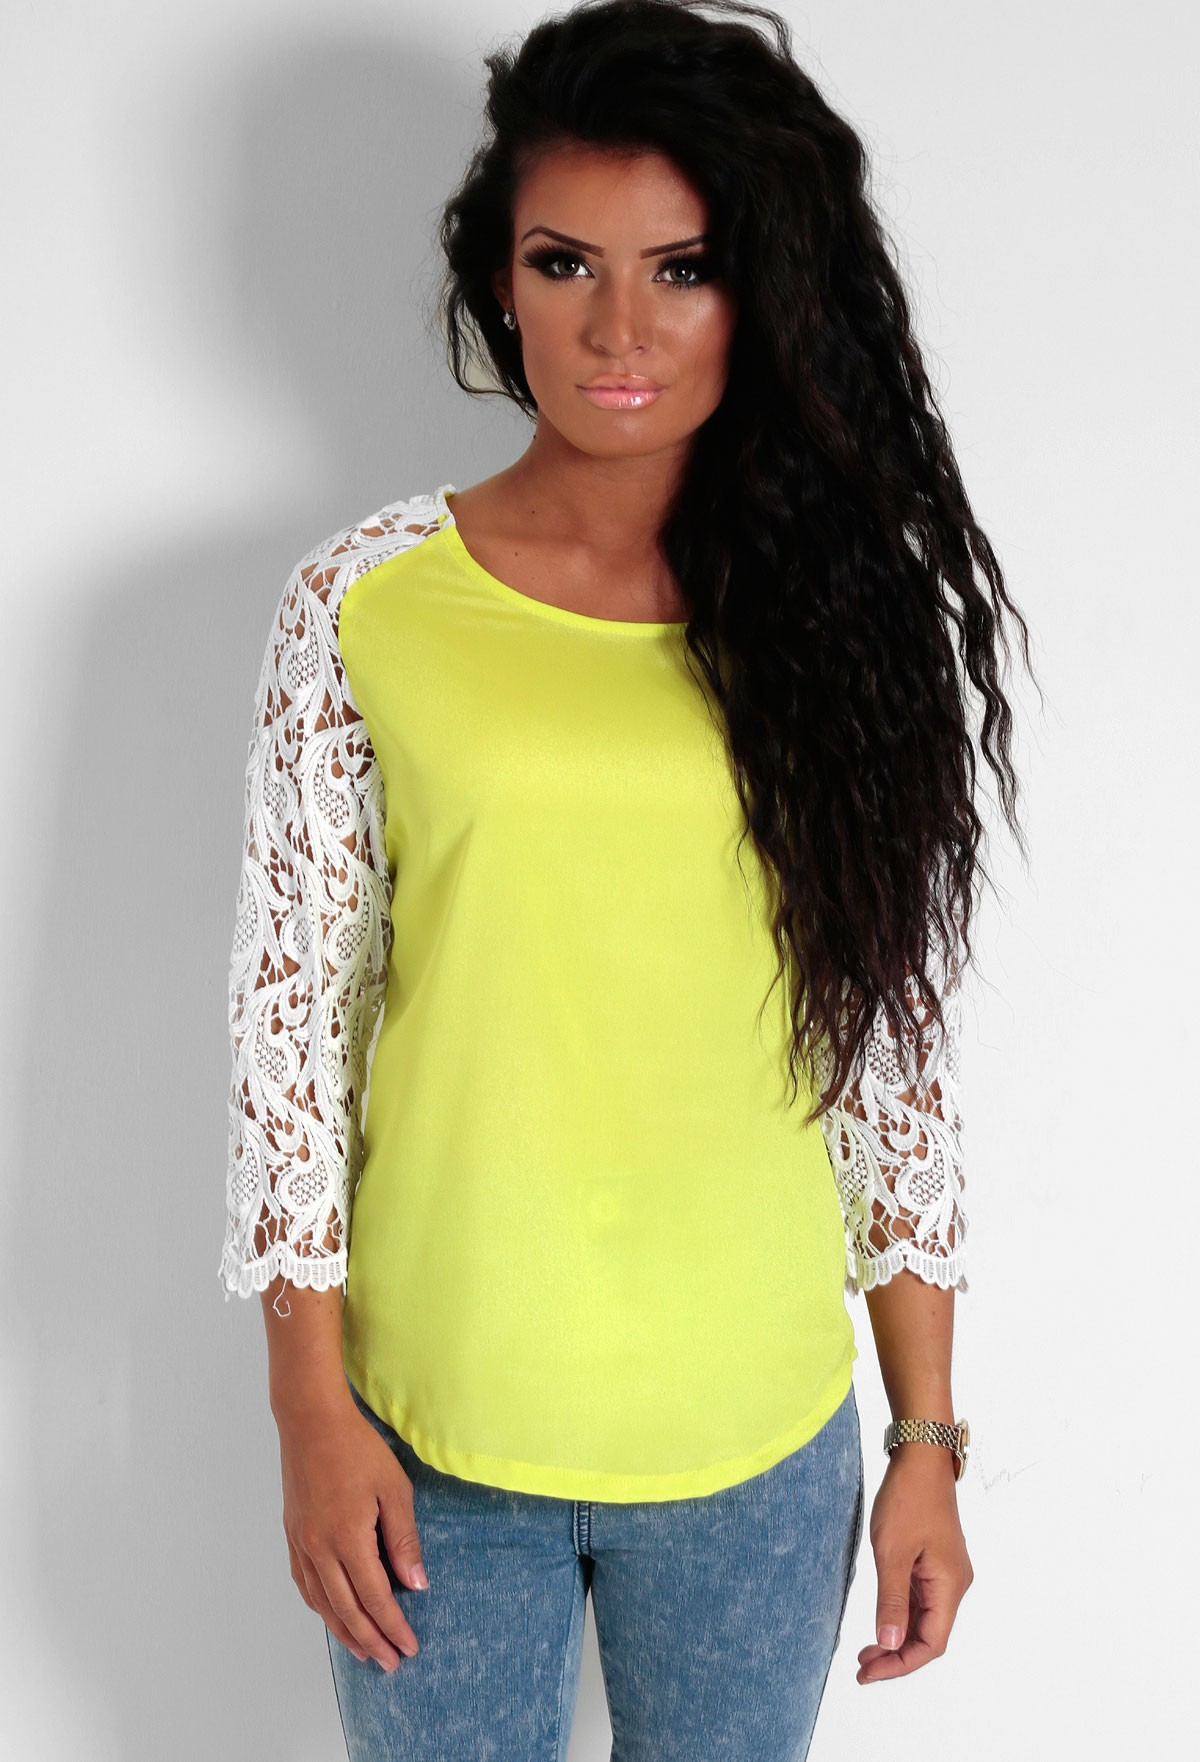 Solero Green Curved Hem Blouse Top | Pink Boutique